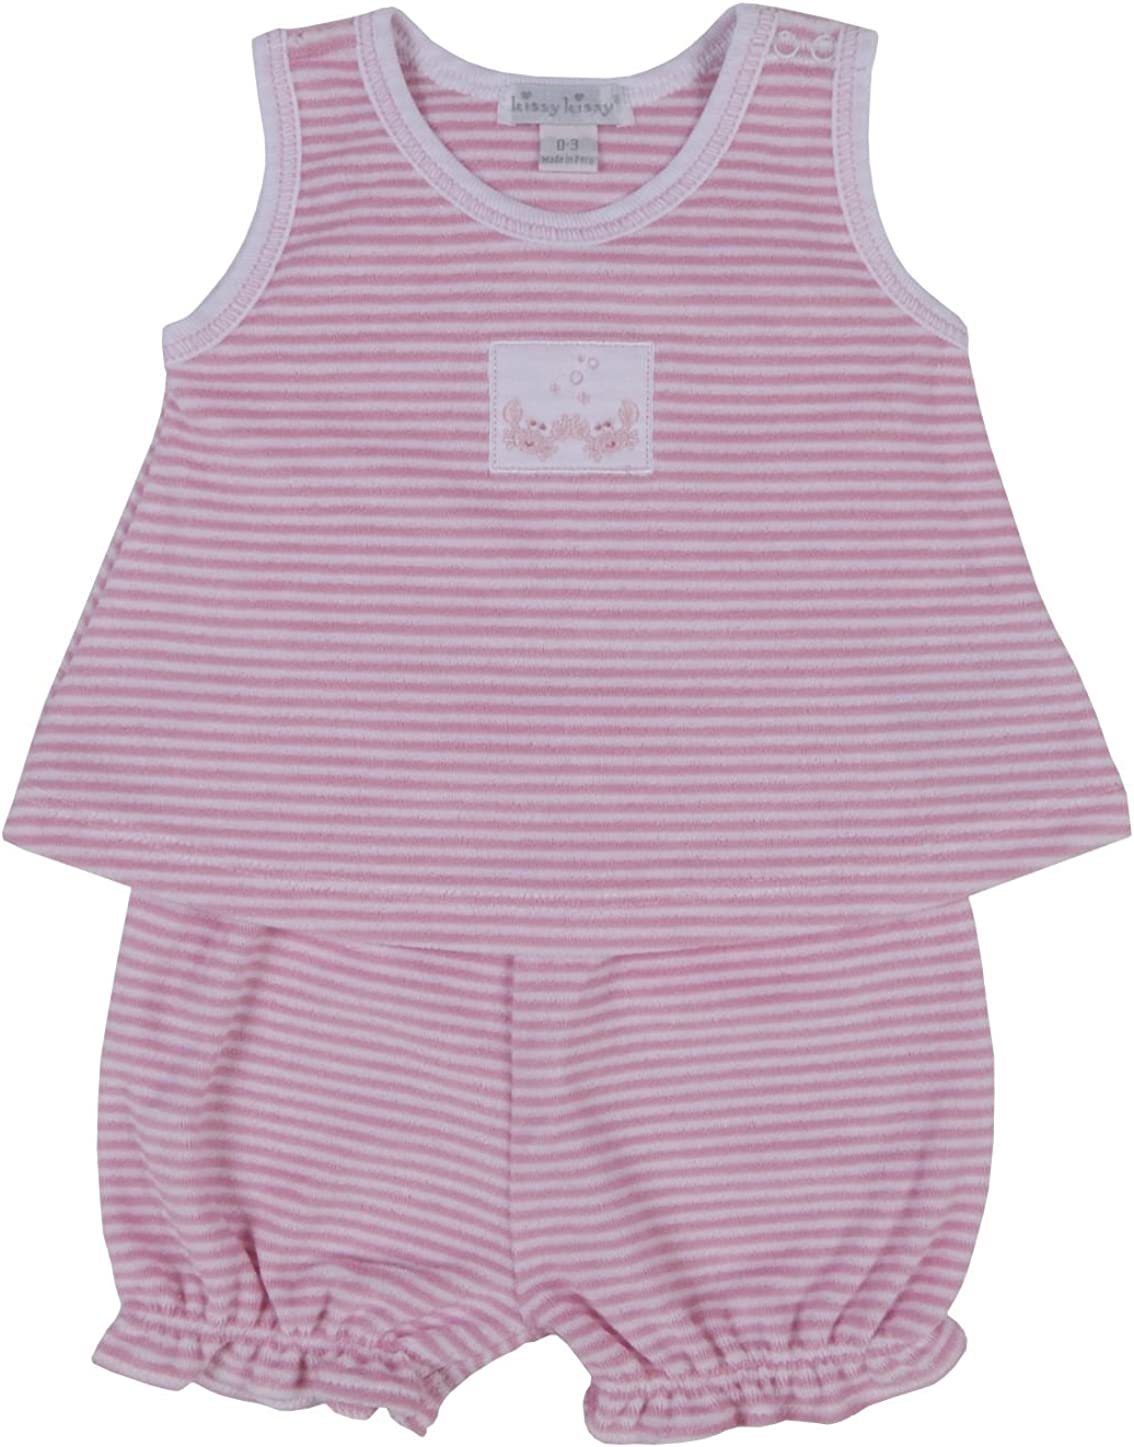 Mri-le1 Toddler Baby Boy Girl Coverall Bisexual Flag Heart Baby Rompers